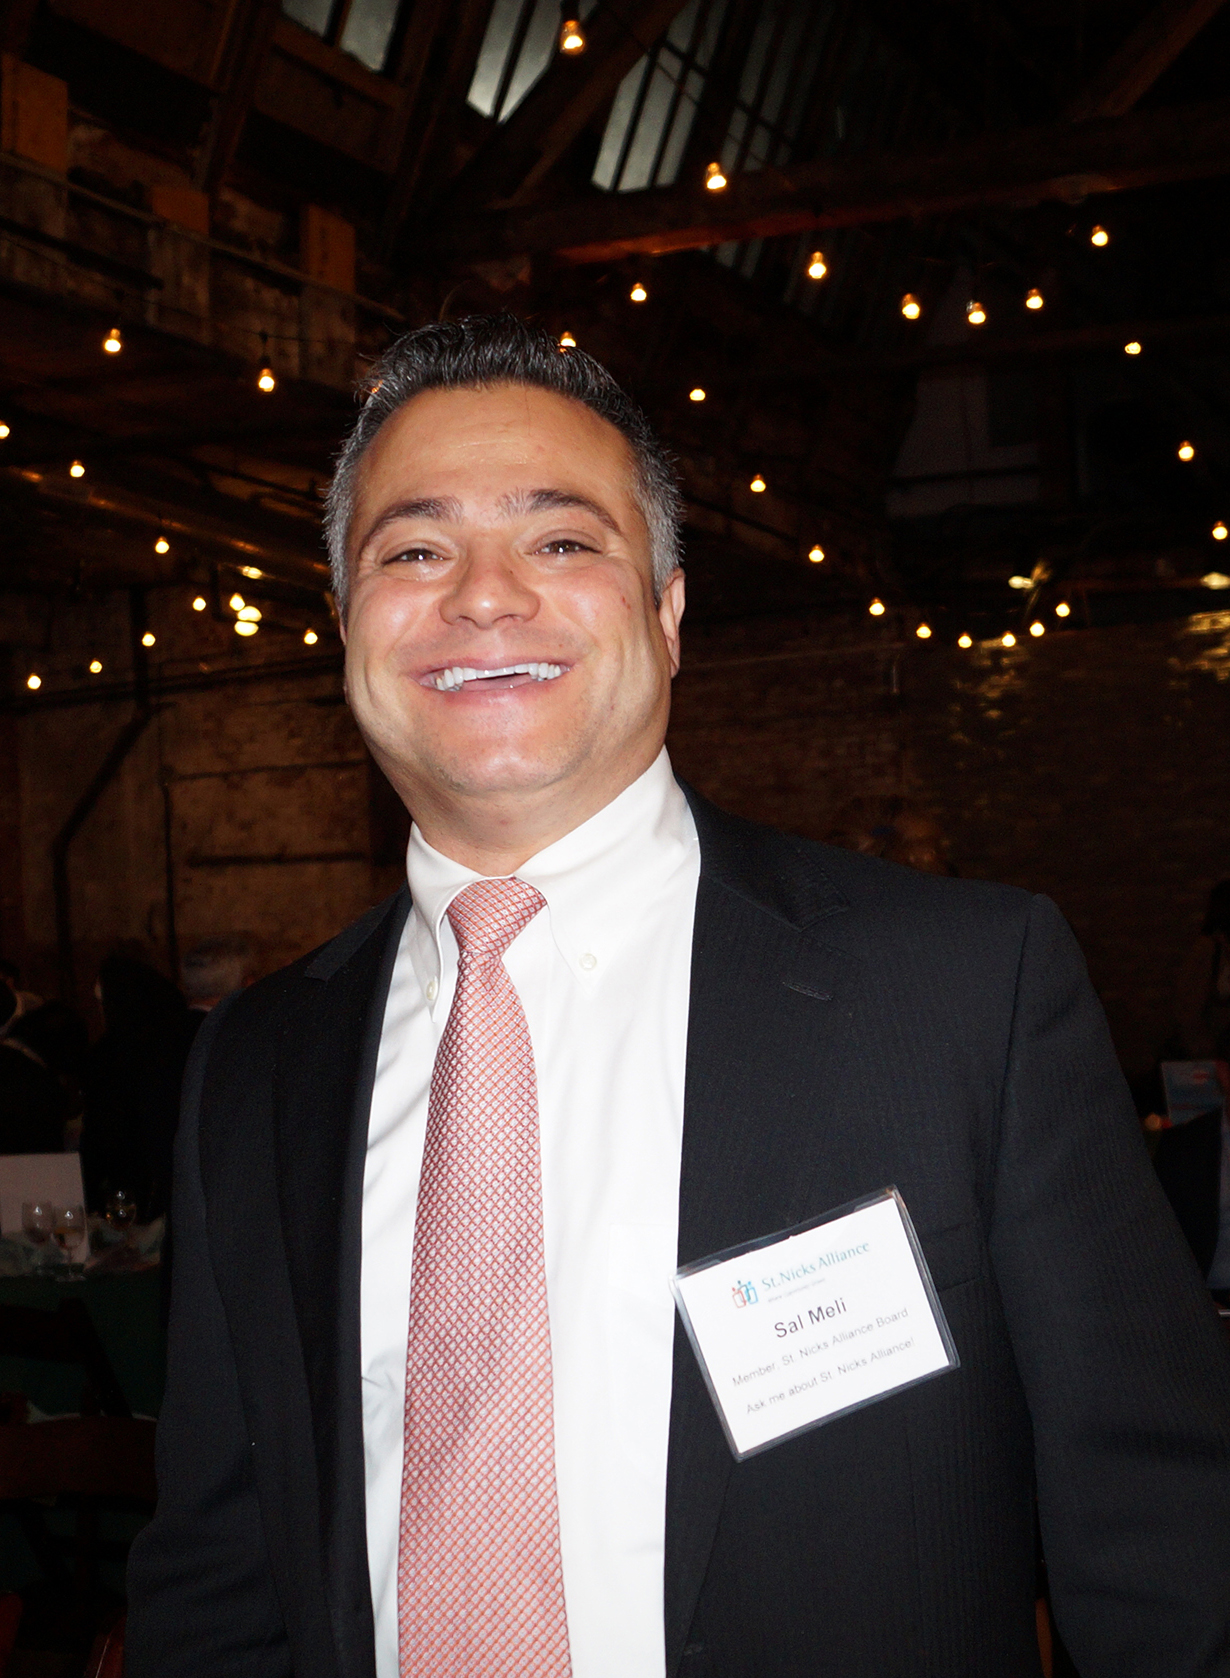 Sal Meli is a cheerful force whose focus is affordable housing as a St. Nicks Alliance Board member